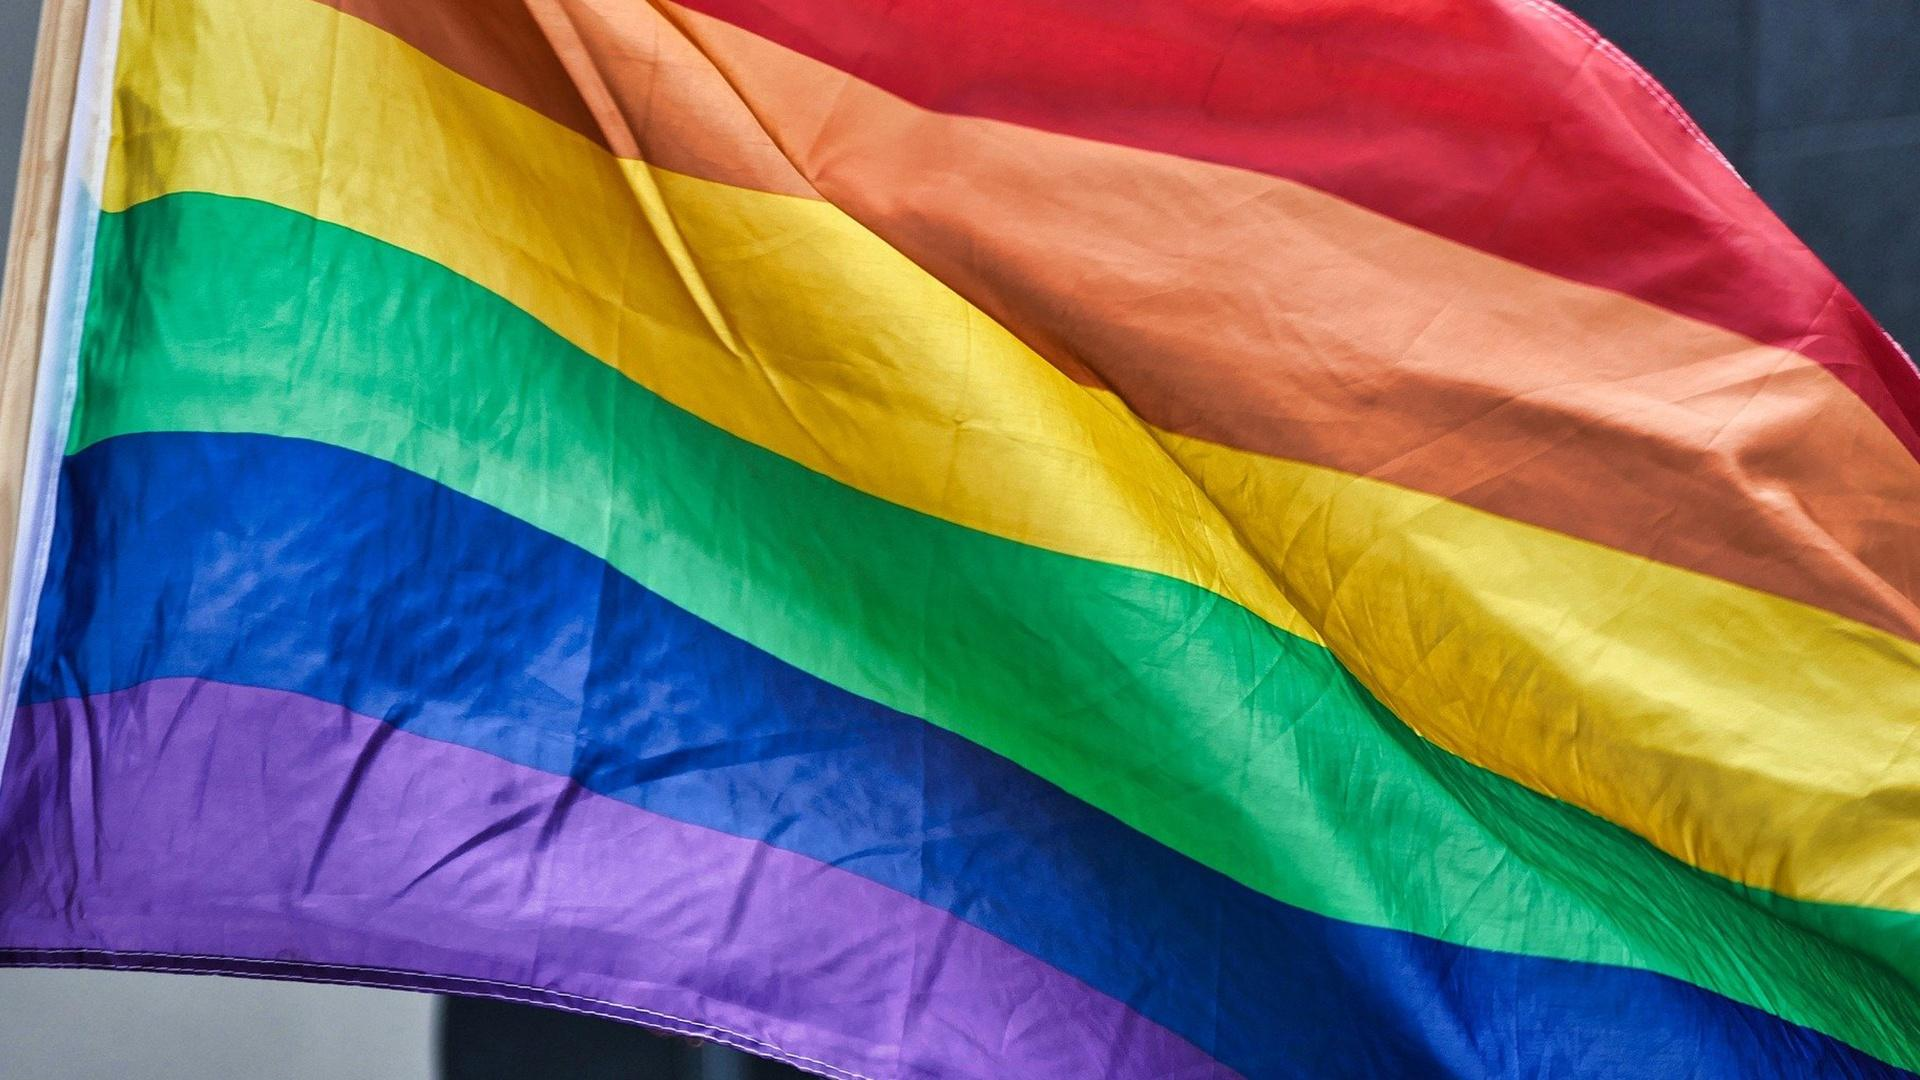 Aberdeen To Hold Its First Pride Parade